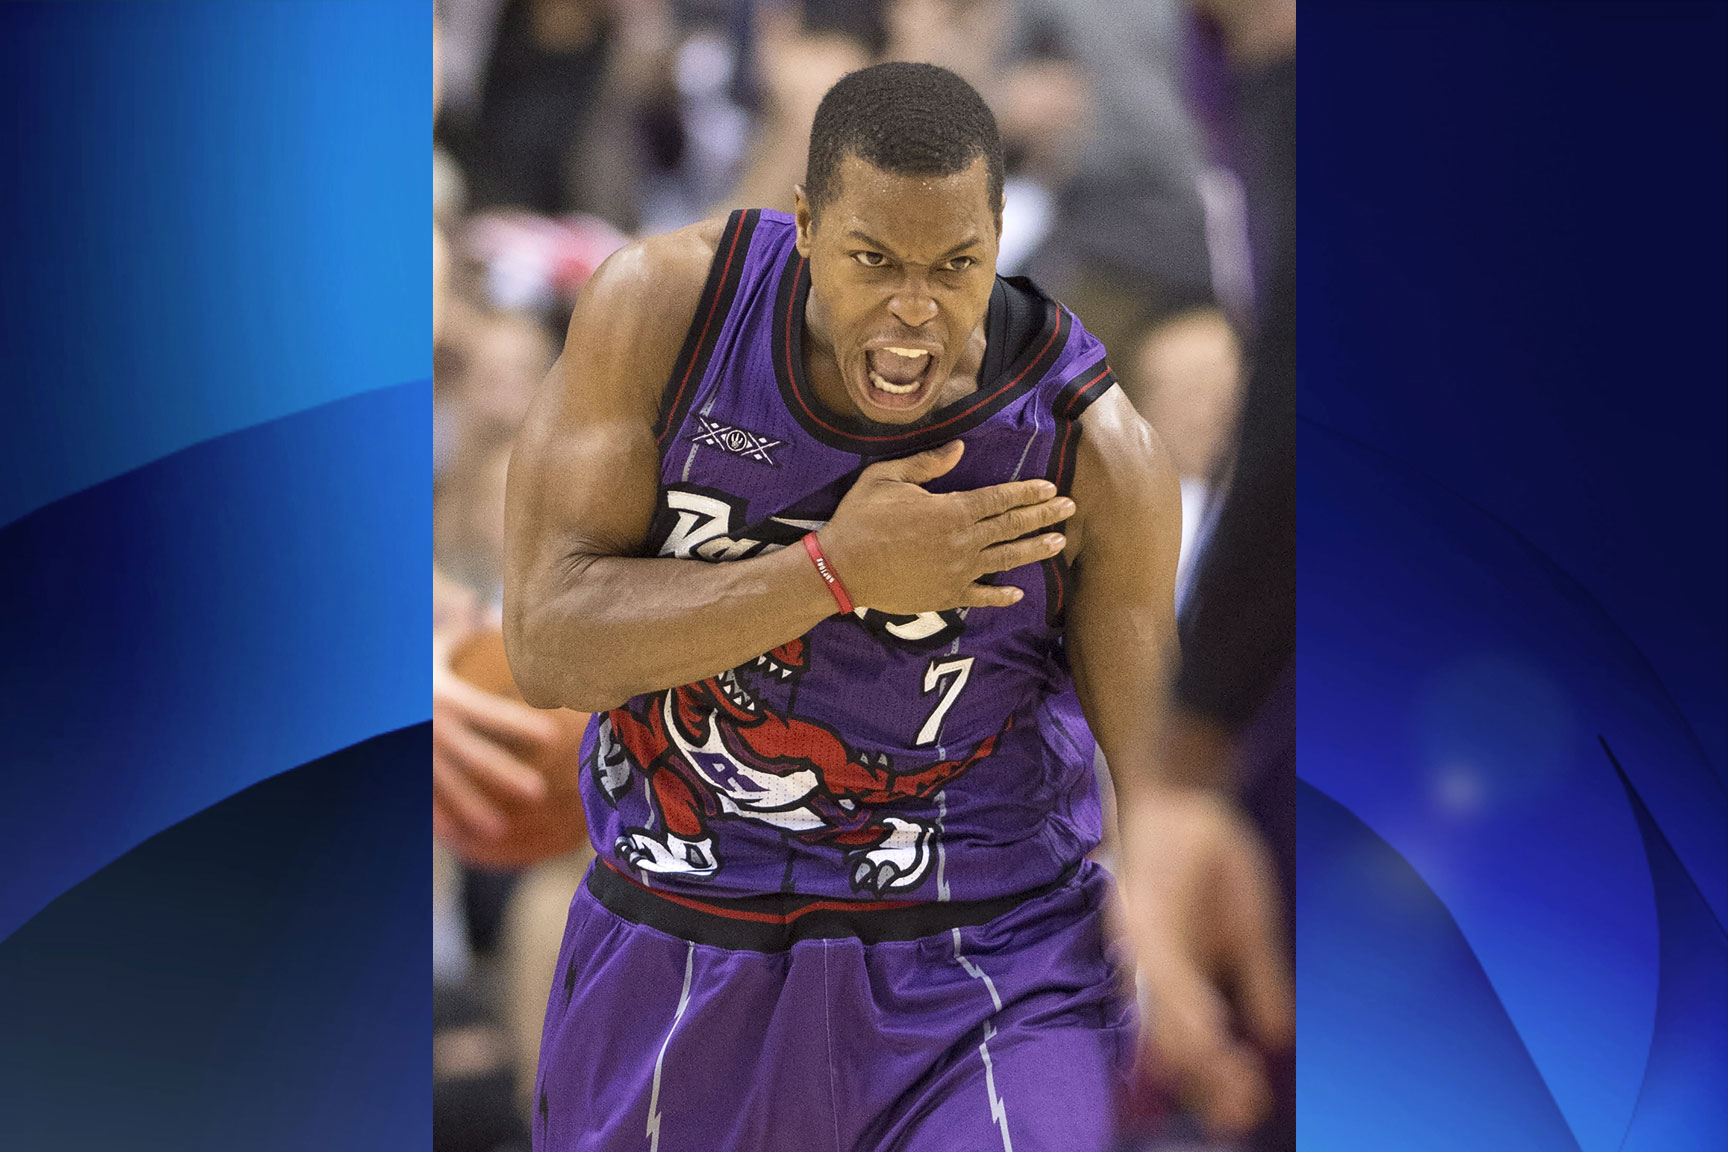 Toronto Raptors' Kyle Lowry celebrates during the Raptors win over the Brooklyn Nets in NBA action in Toronto on Dec. 17, 2014. THE CANADIAN PRESS/Frank Gunn.